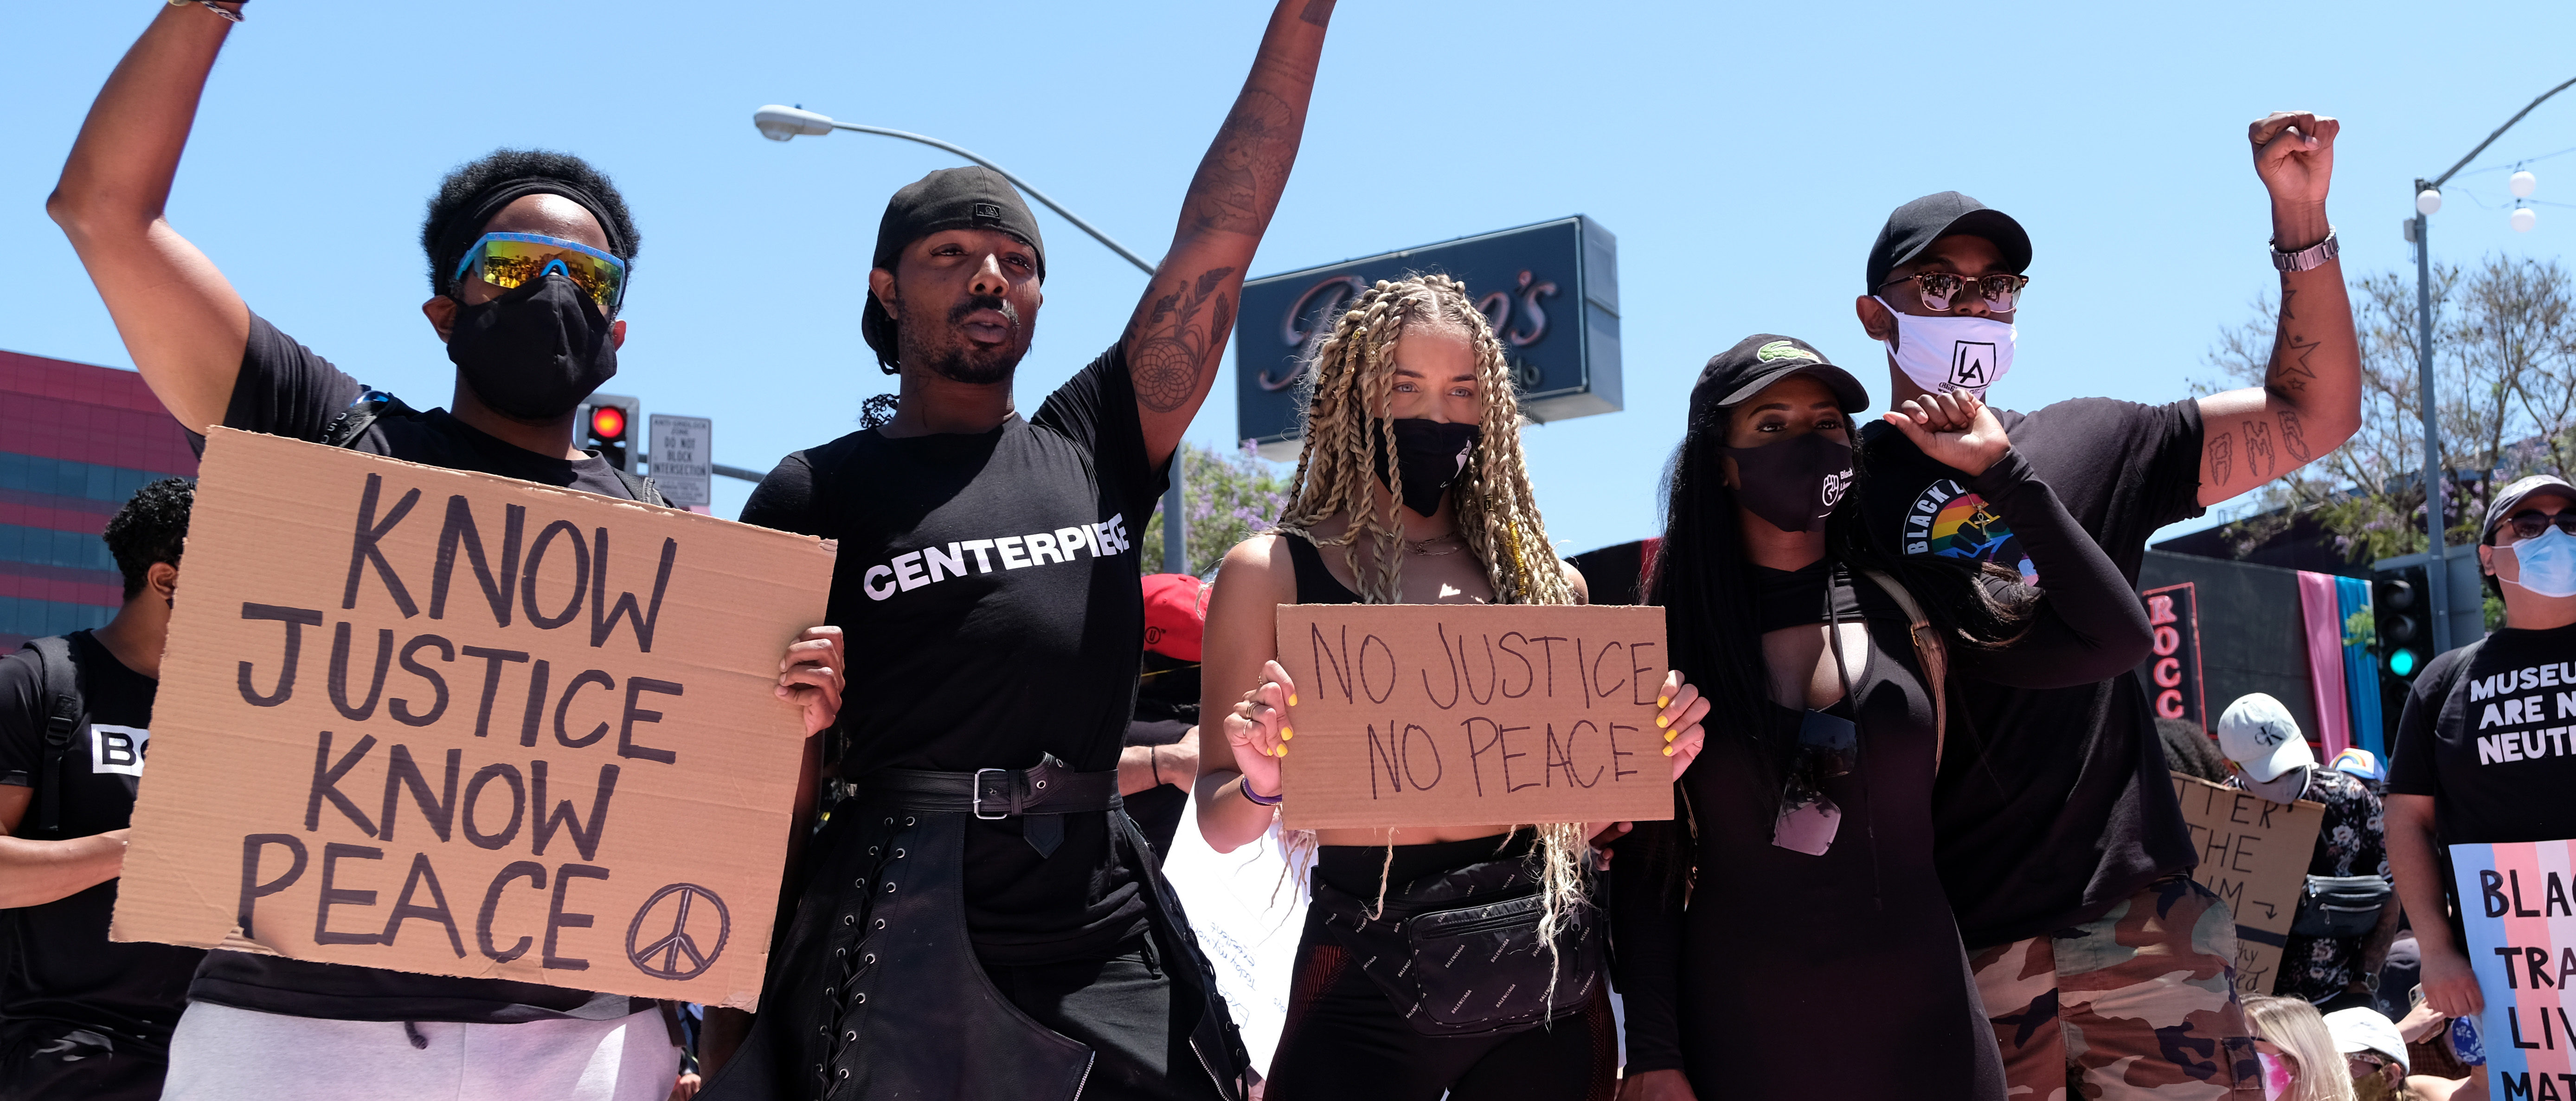 LOS ANGELES, CALIFORNIA - JUNE 14: Model Jasmine Sanders (C) attends the All Black Lives Matter Solidarity March on June 14, 2020 in Los Angeles, California.(Photo by Sarah Morris/Getty Images)